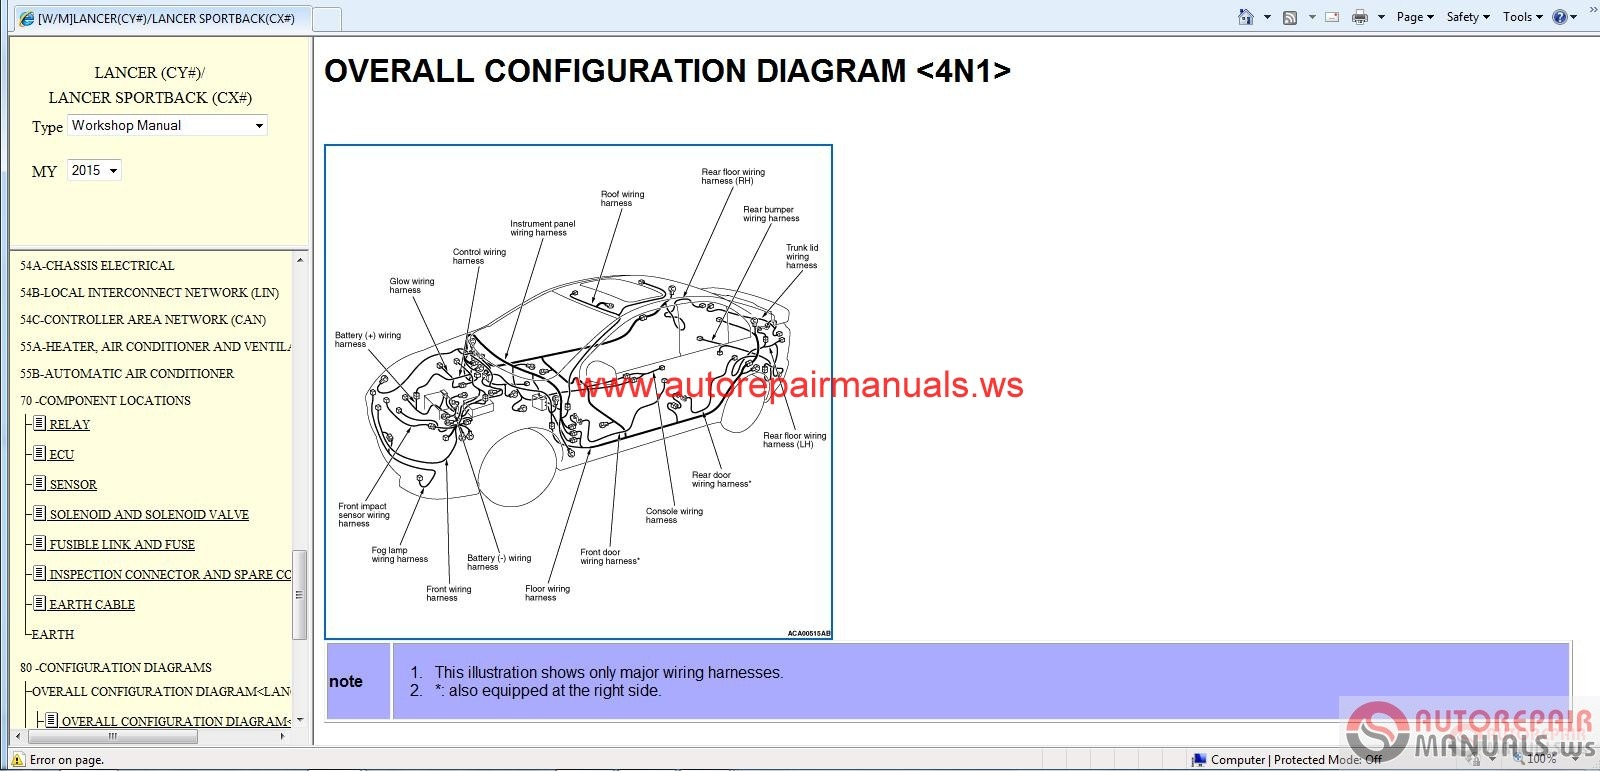 Mitsubishi Lancer And Lancer Sportback Service Manual Cd on Mitsubishi Lancer Engine Diagram